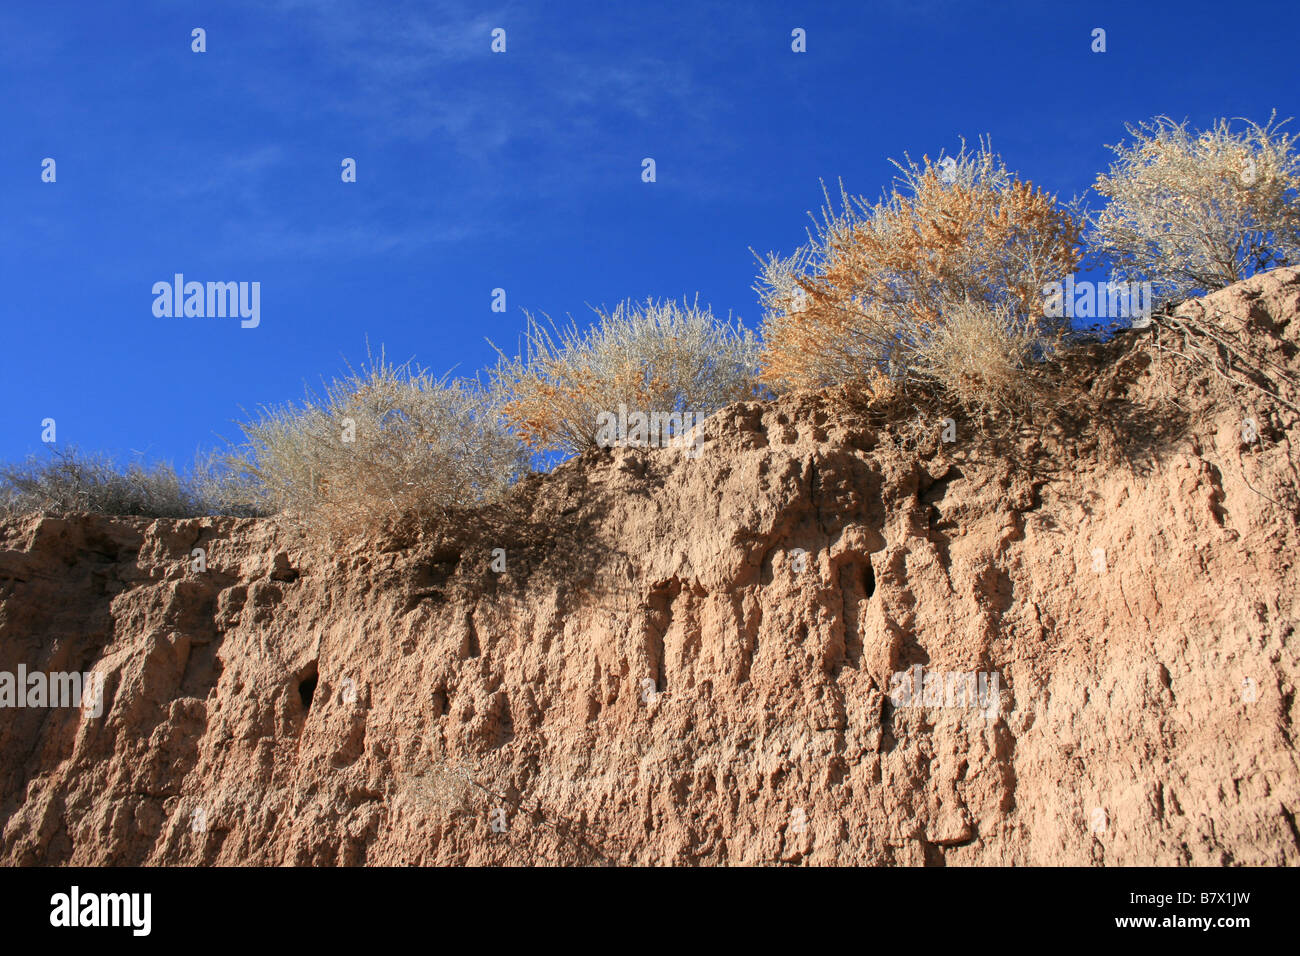 layers of dirt, exposing sea shells and fossils, edge of an arroyo against a blue sky, Albuquerque, New Mexico - Stock Image